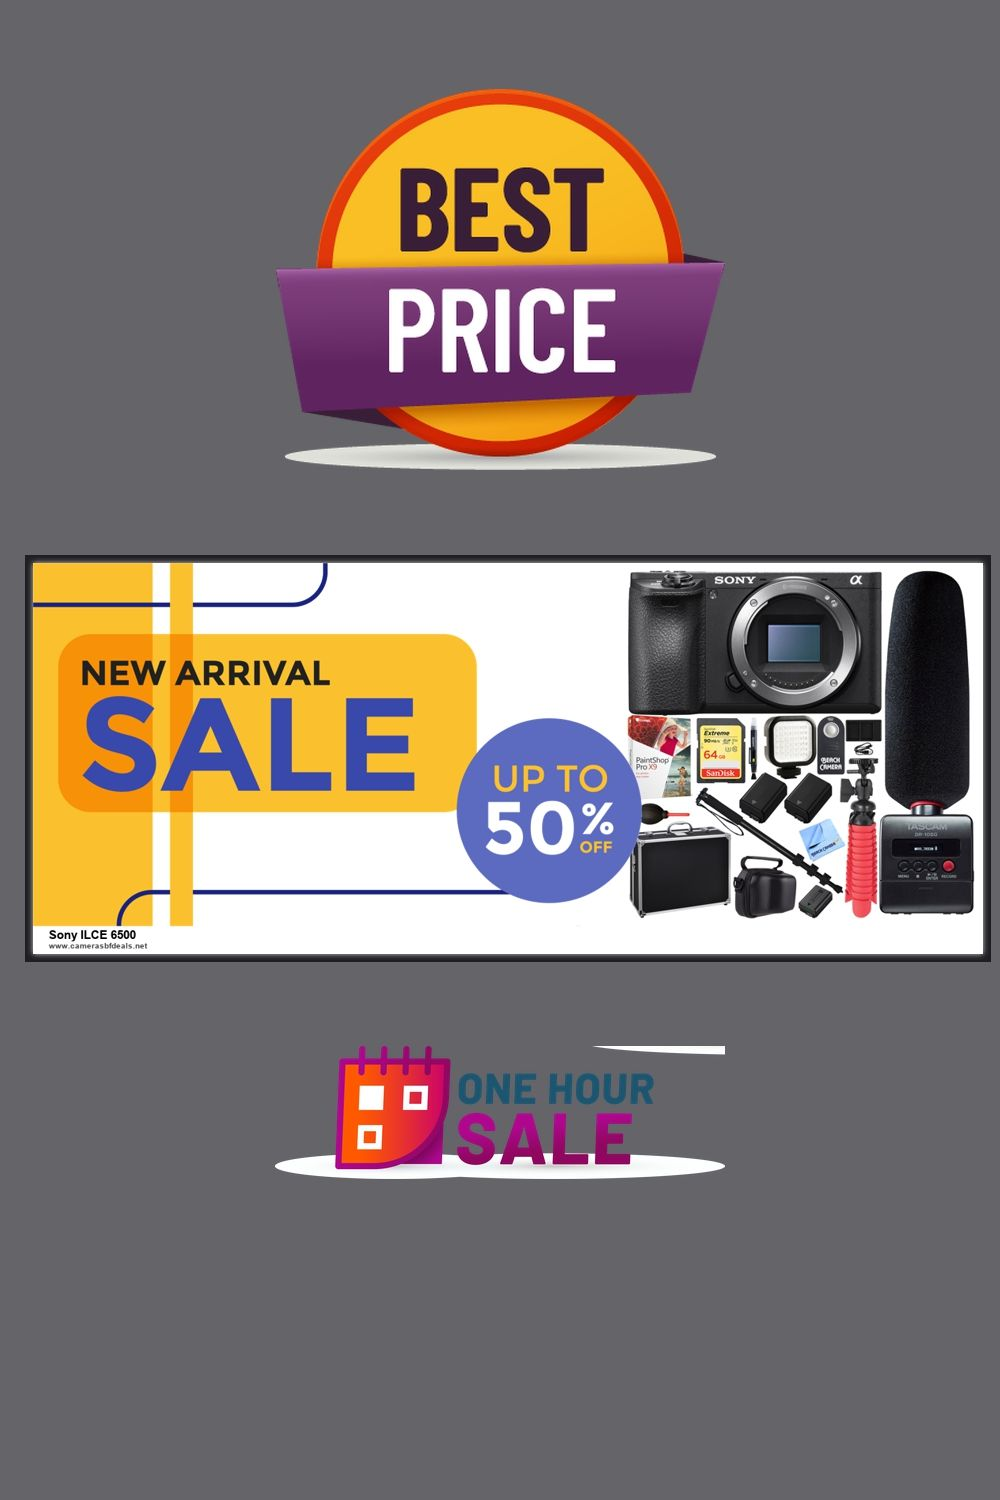 Top 5 Sony Ilce 6500 Black Friday Sales Deals 2020 In 2020 Black Friday Camera Black Friday Sony